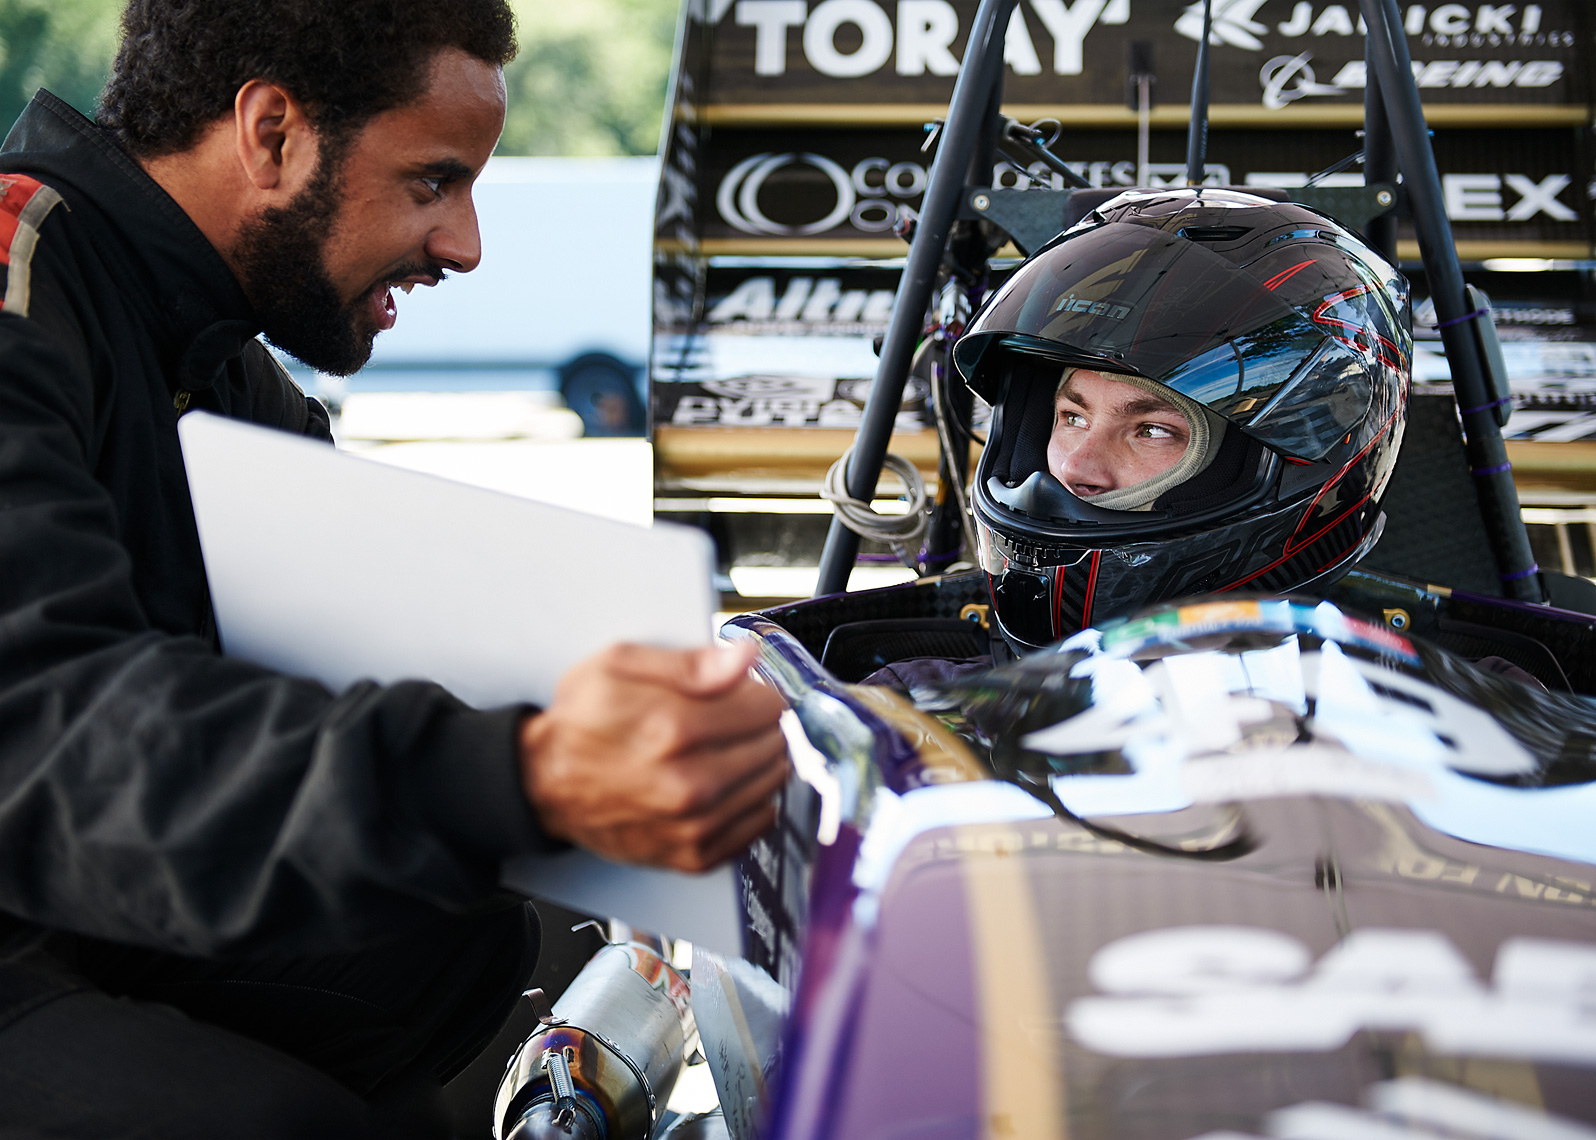 UW race team prepares for race